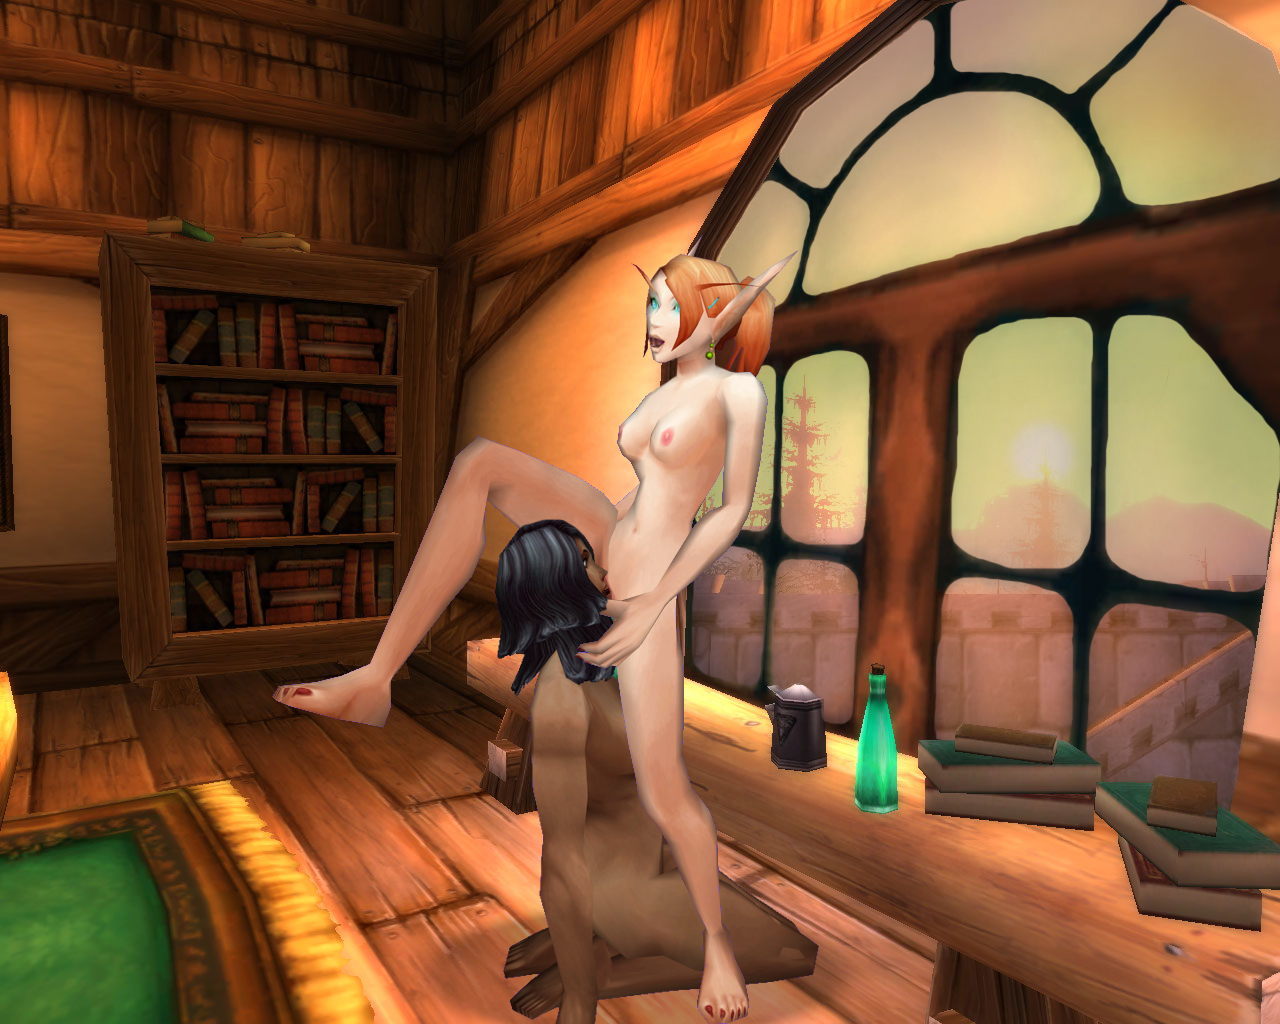 World of Warcraft nude in entorage nude pics